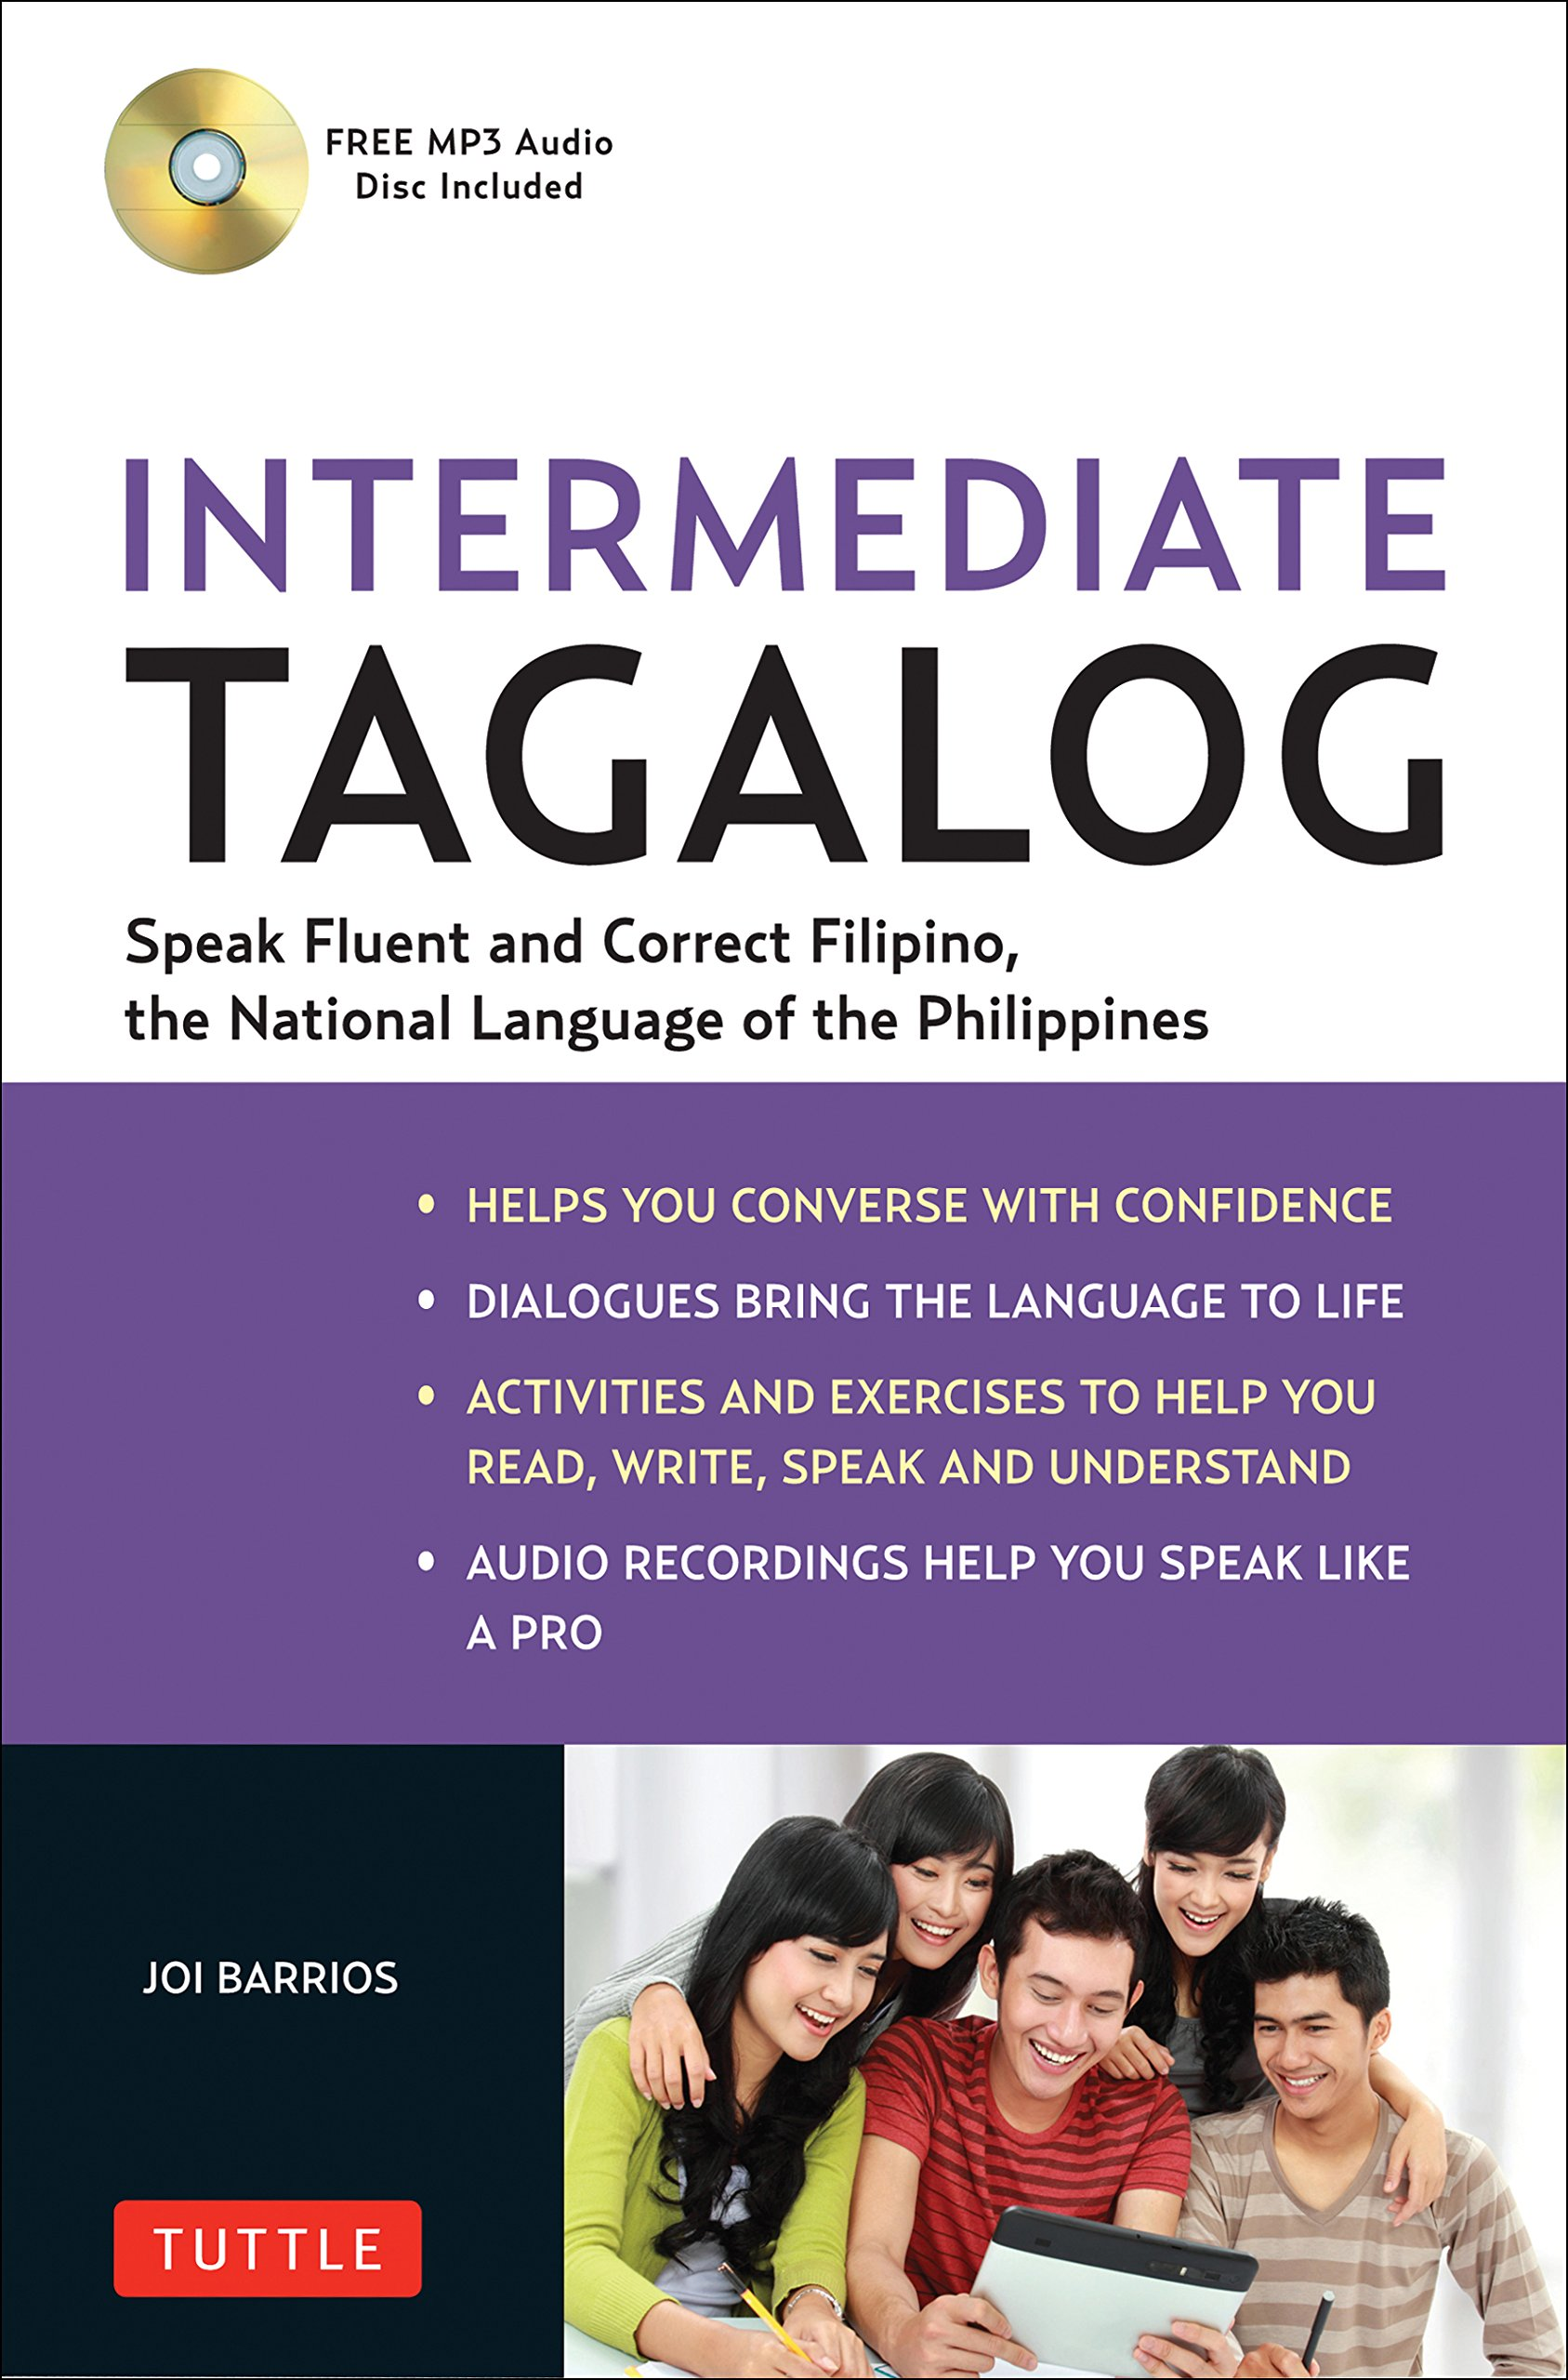 Amazon.com: Intermediate Tagalog: Learn to Speak Fluent Tagalog (Filipino),  the National Language of the Philippines (Free CD-Rom Included)  (9780804842624): ...